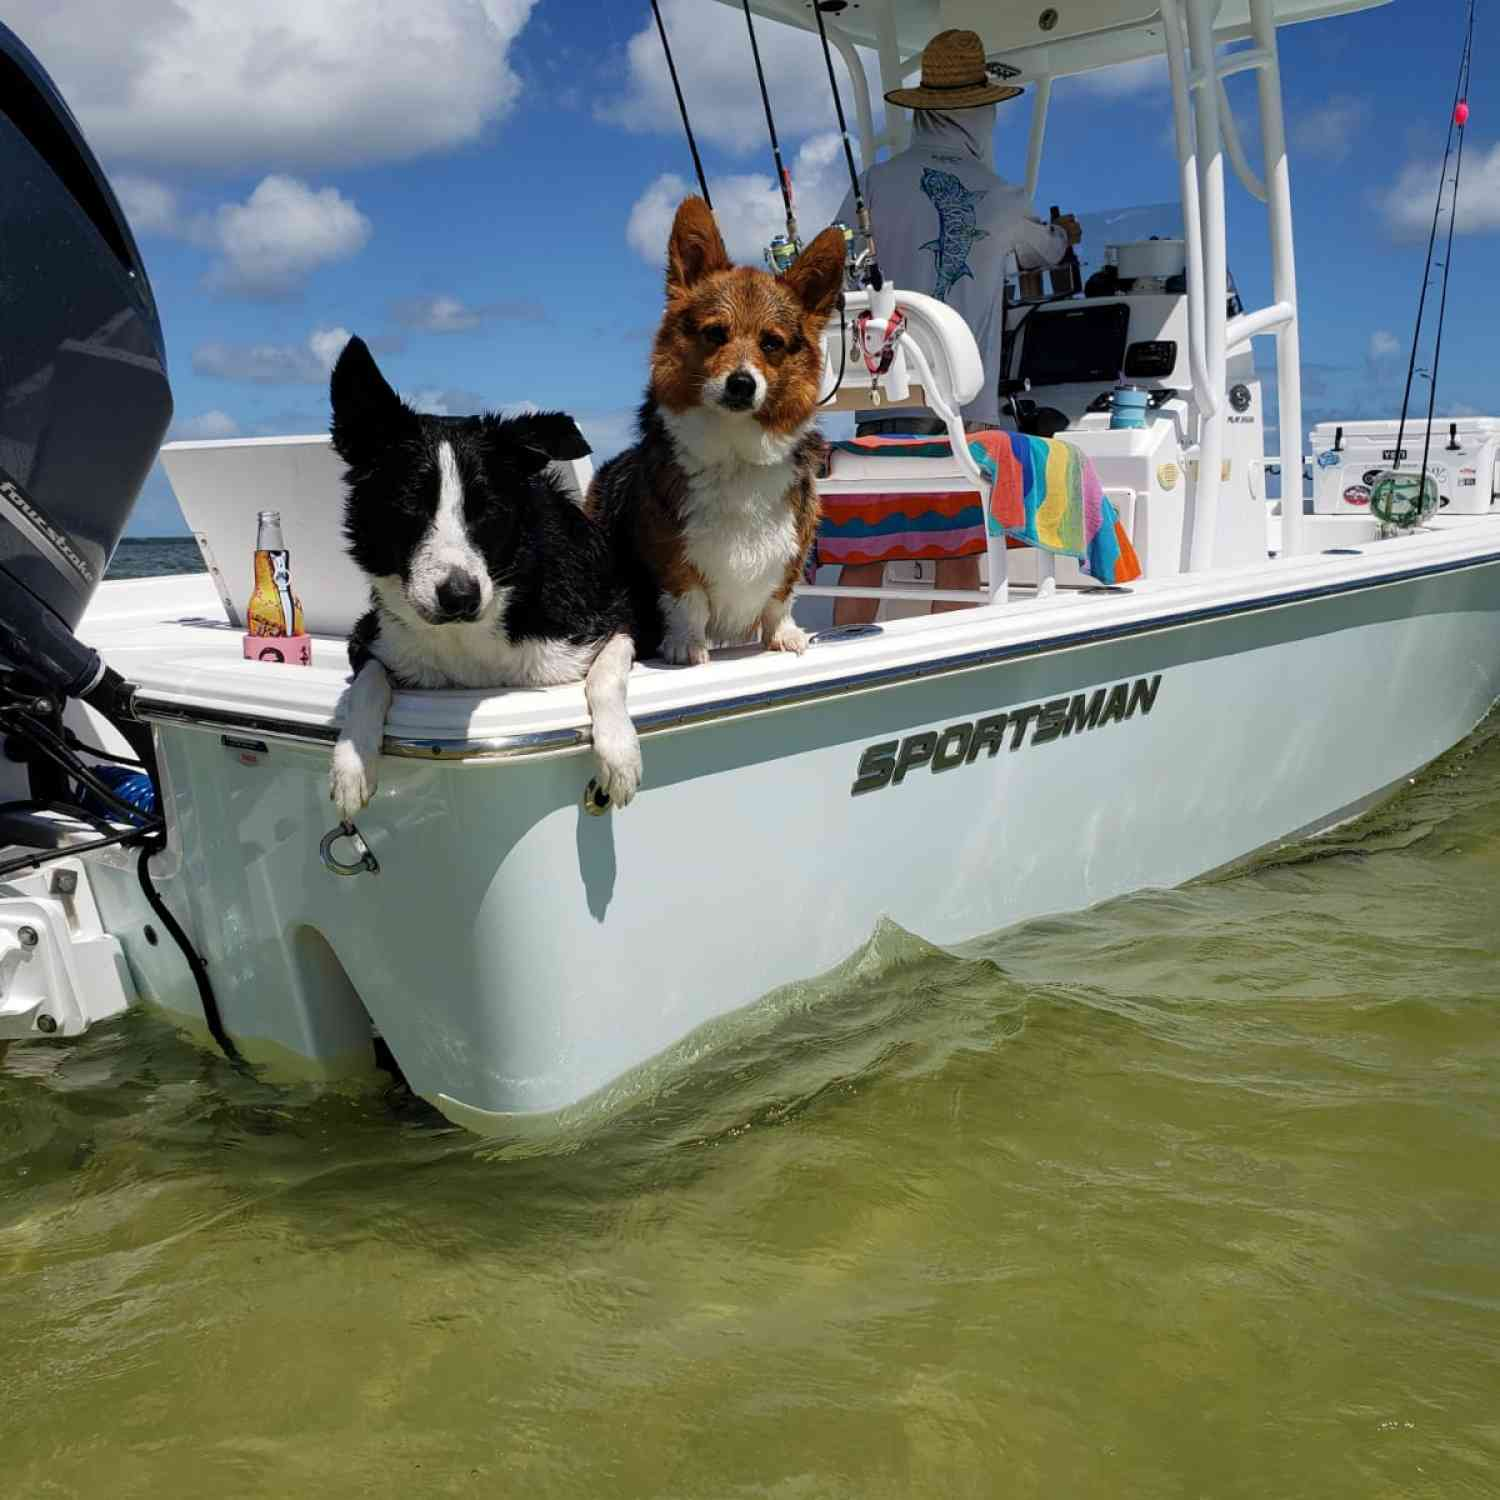 Title: We love our boat! - On board their Sportsman Masters 247 Bay Boat - Location: Key Largo FL. Participating in the Photo Contest #SportsmanMay2020